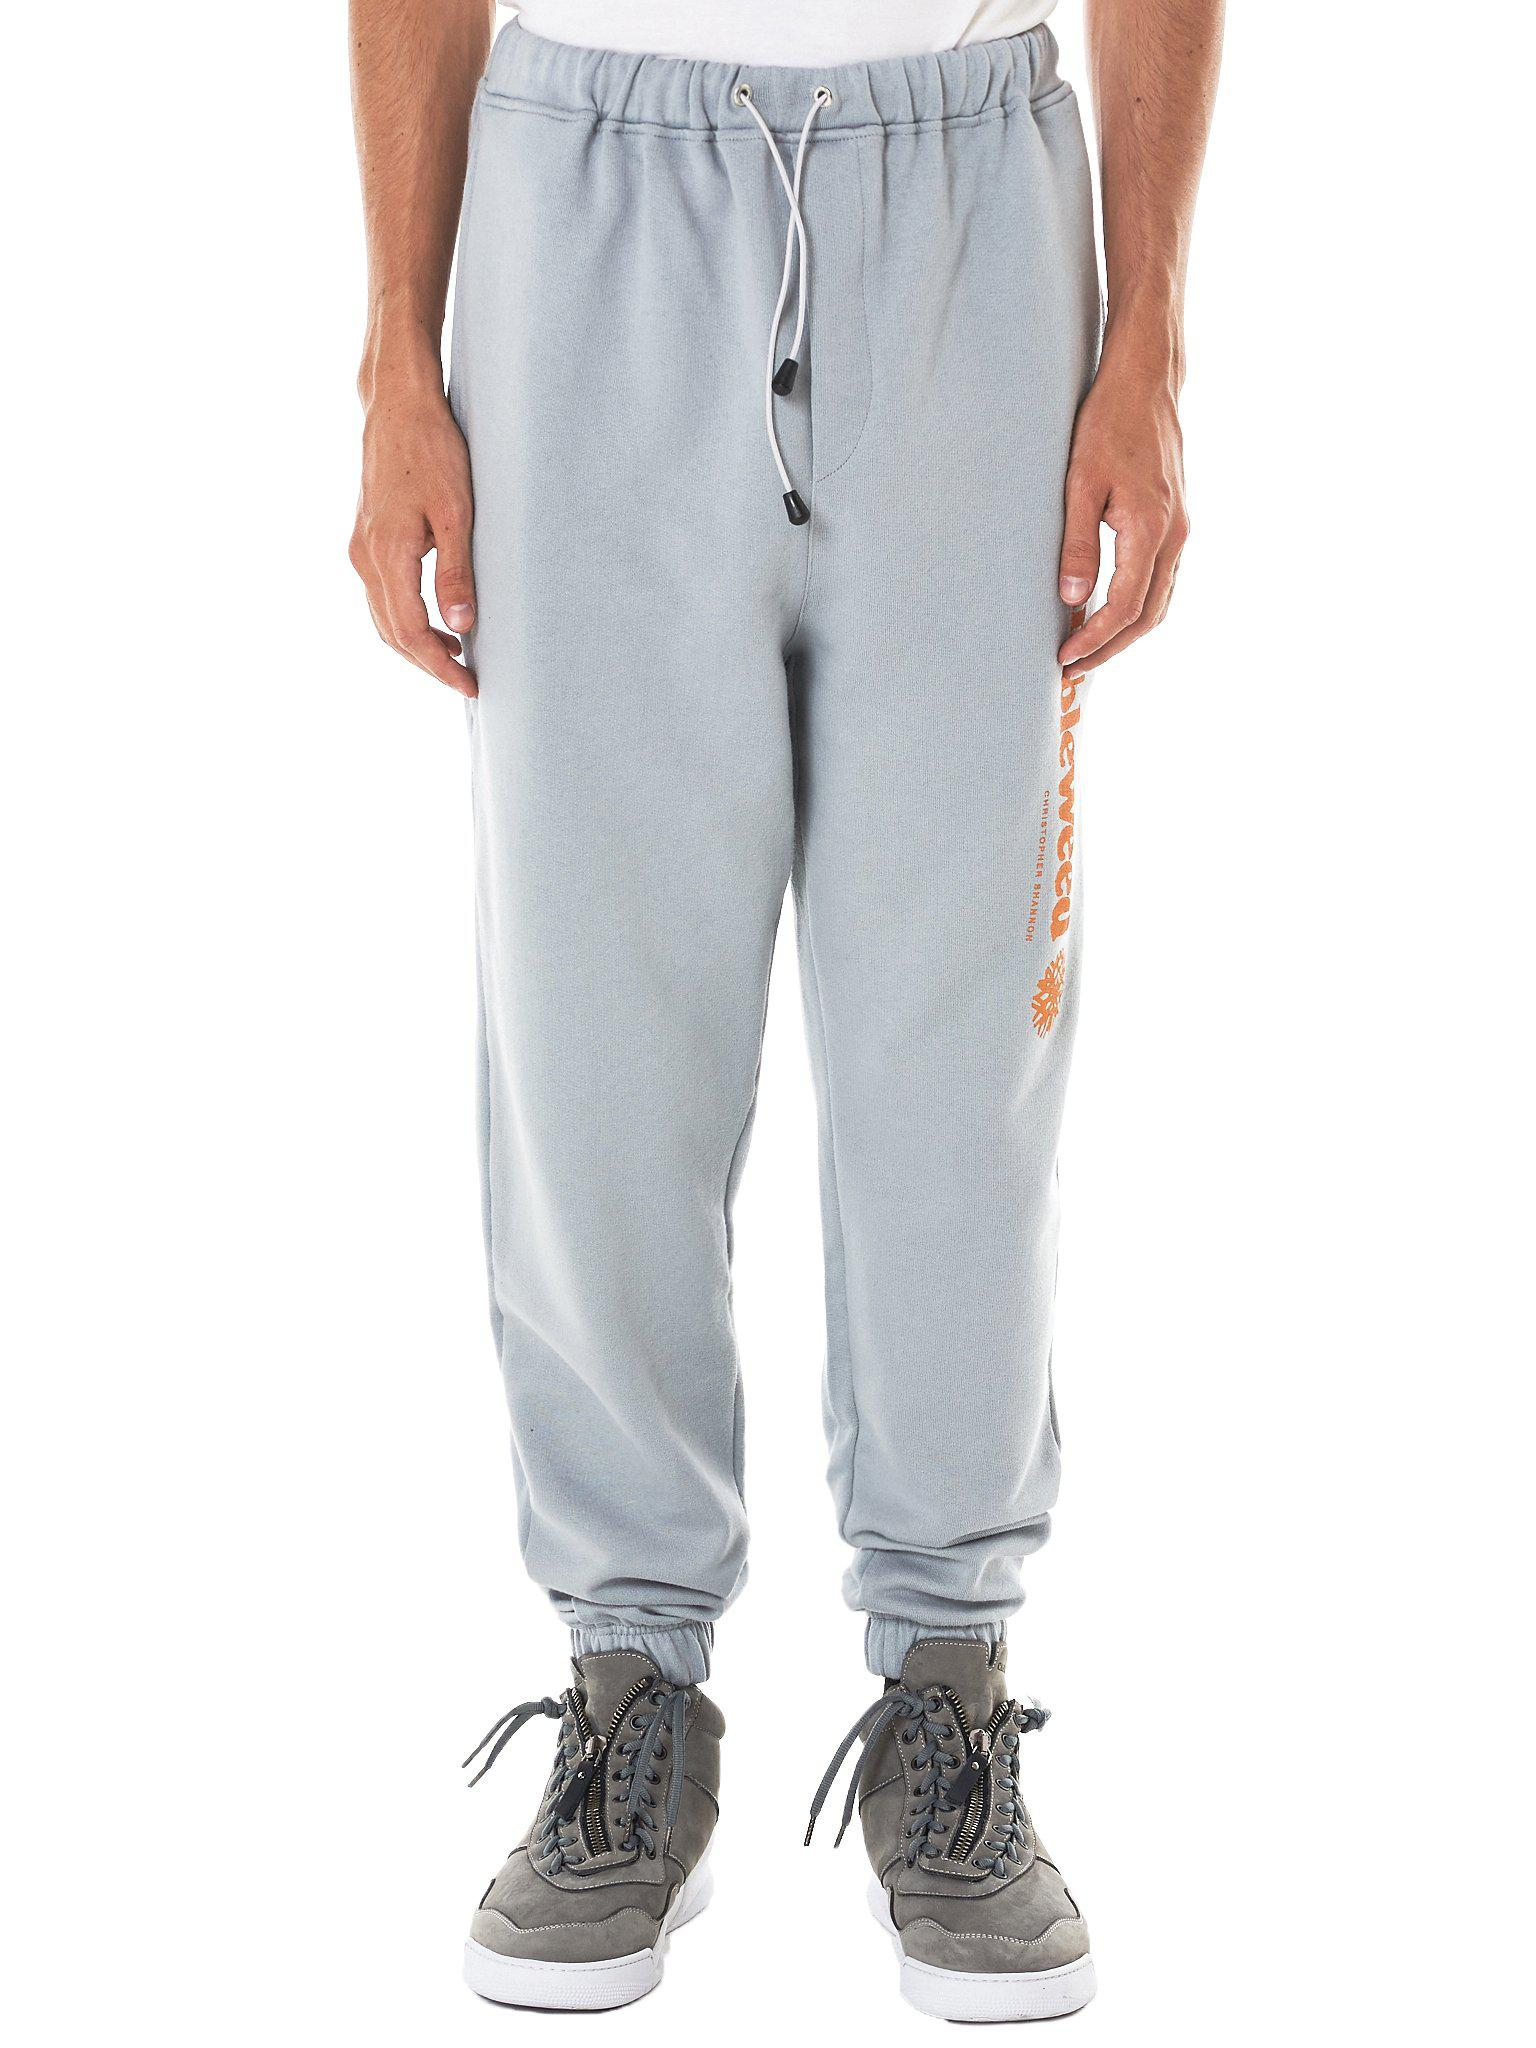 4dcdc336286 Lyst - Christopher Shannon  tumbleweed  Graphic Joggers in Gray for Men